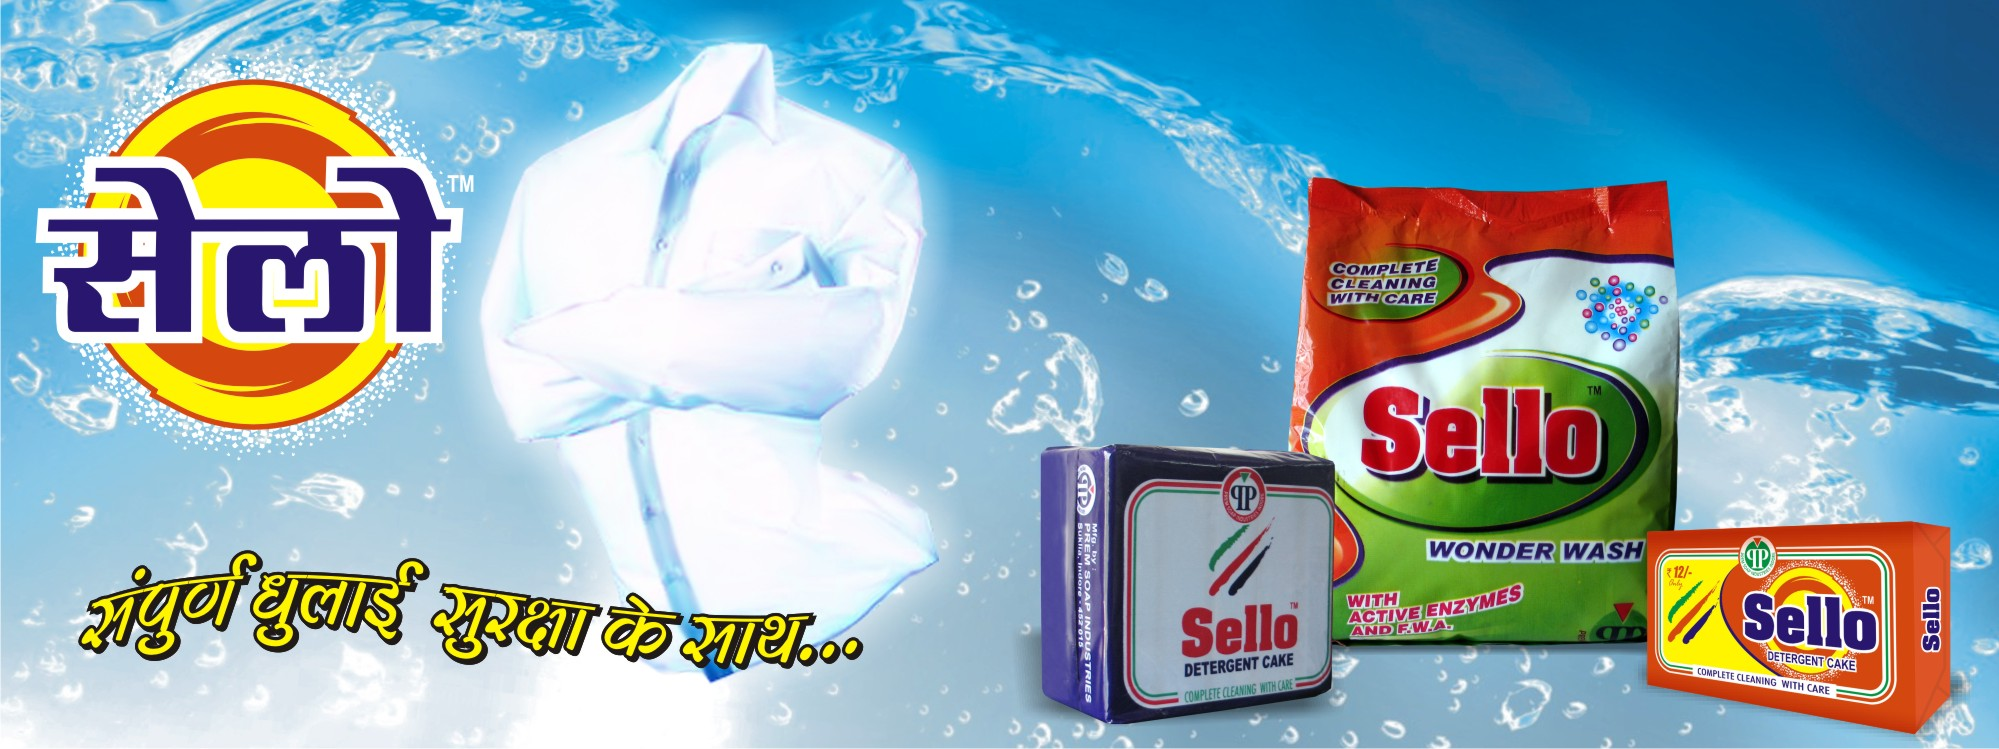 Detergent Powder Manufacturer